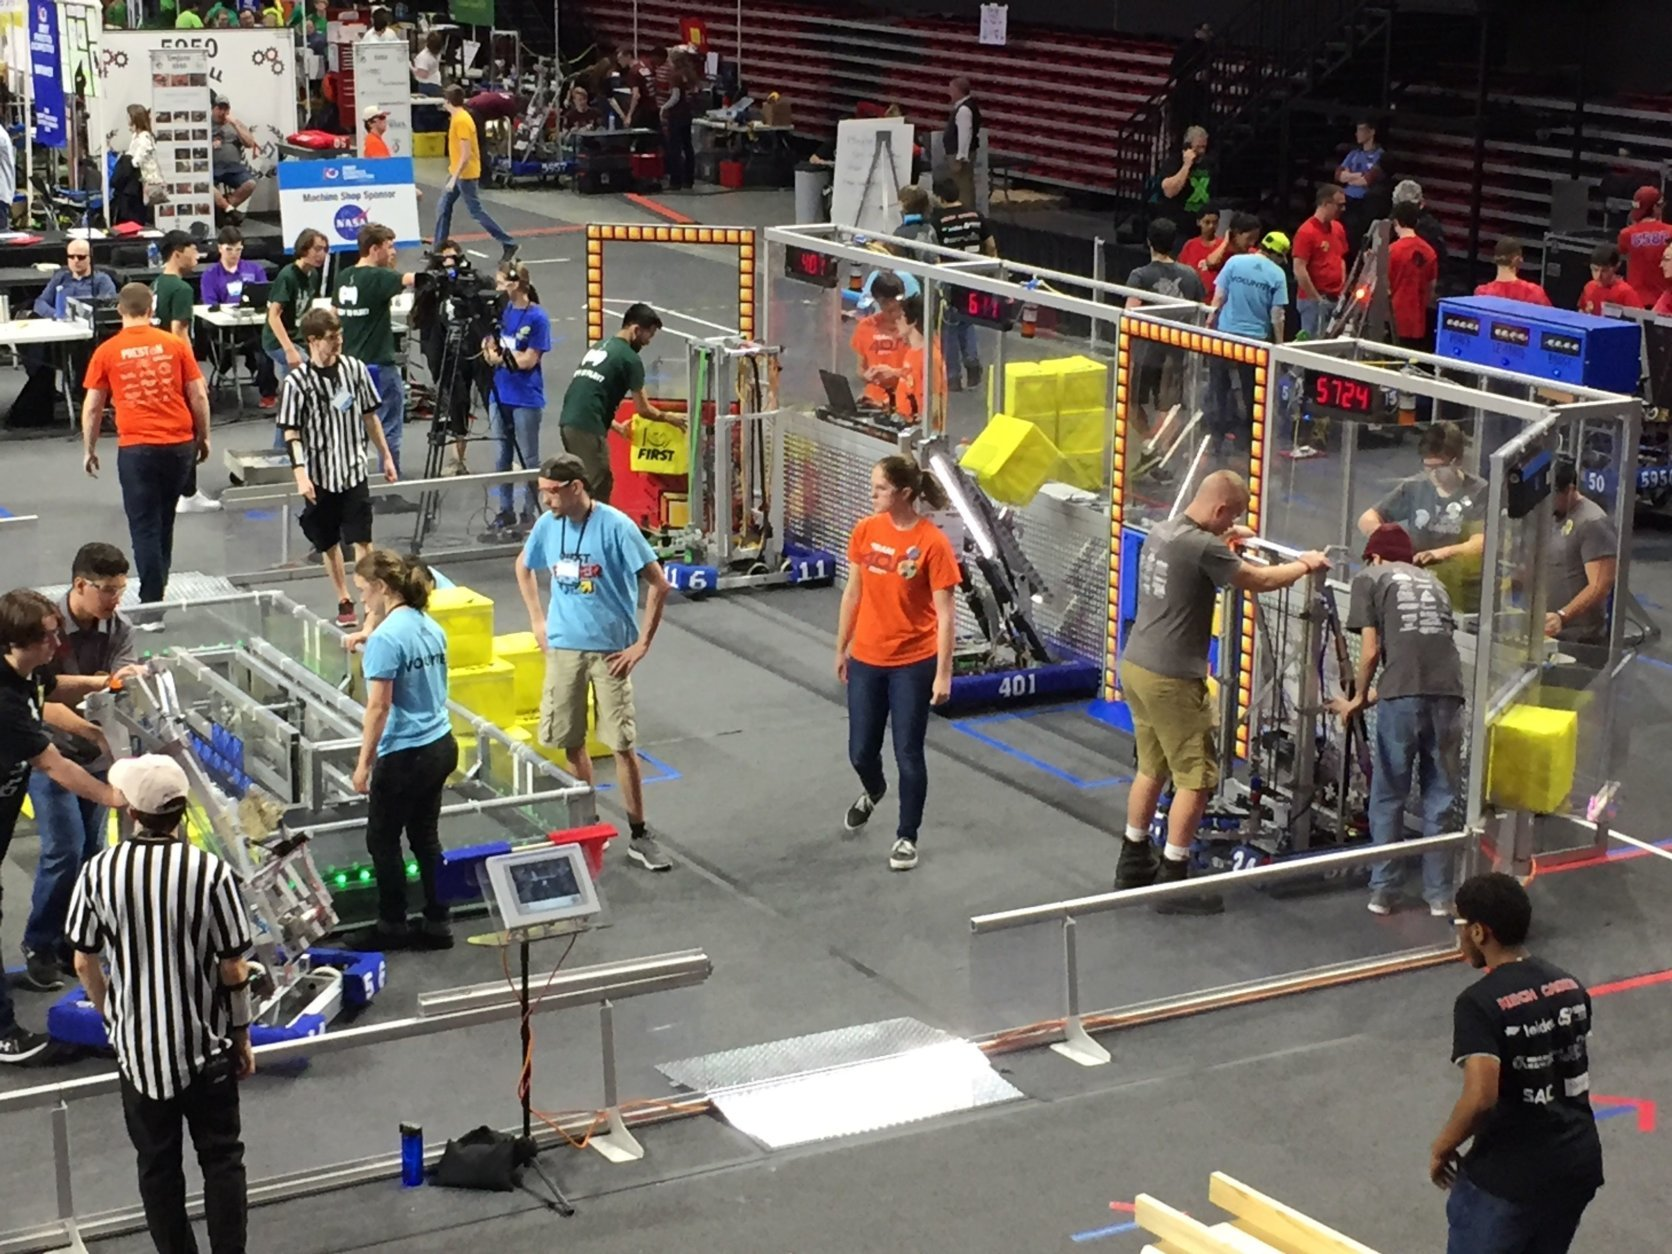 The robotics team setting up their robot for the University of Maryland District Championship. (Courtesy of Amy and Derrick Swaak)